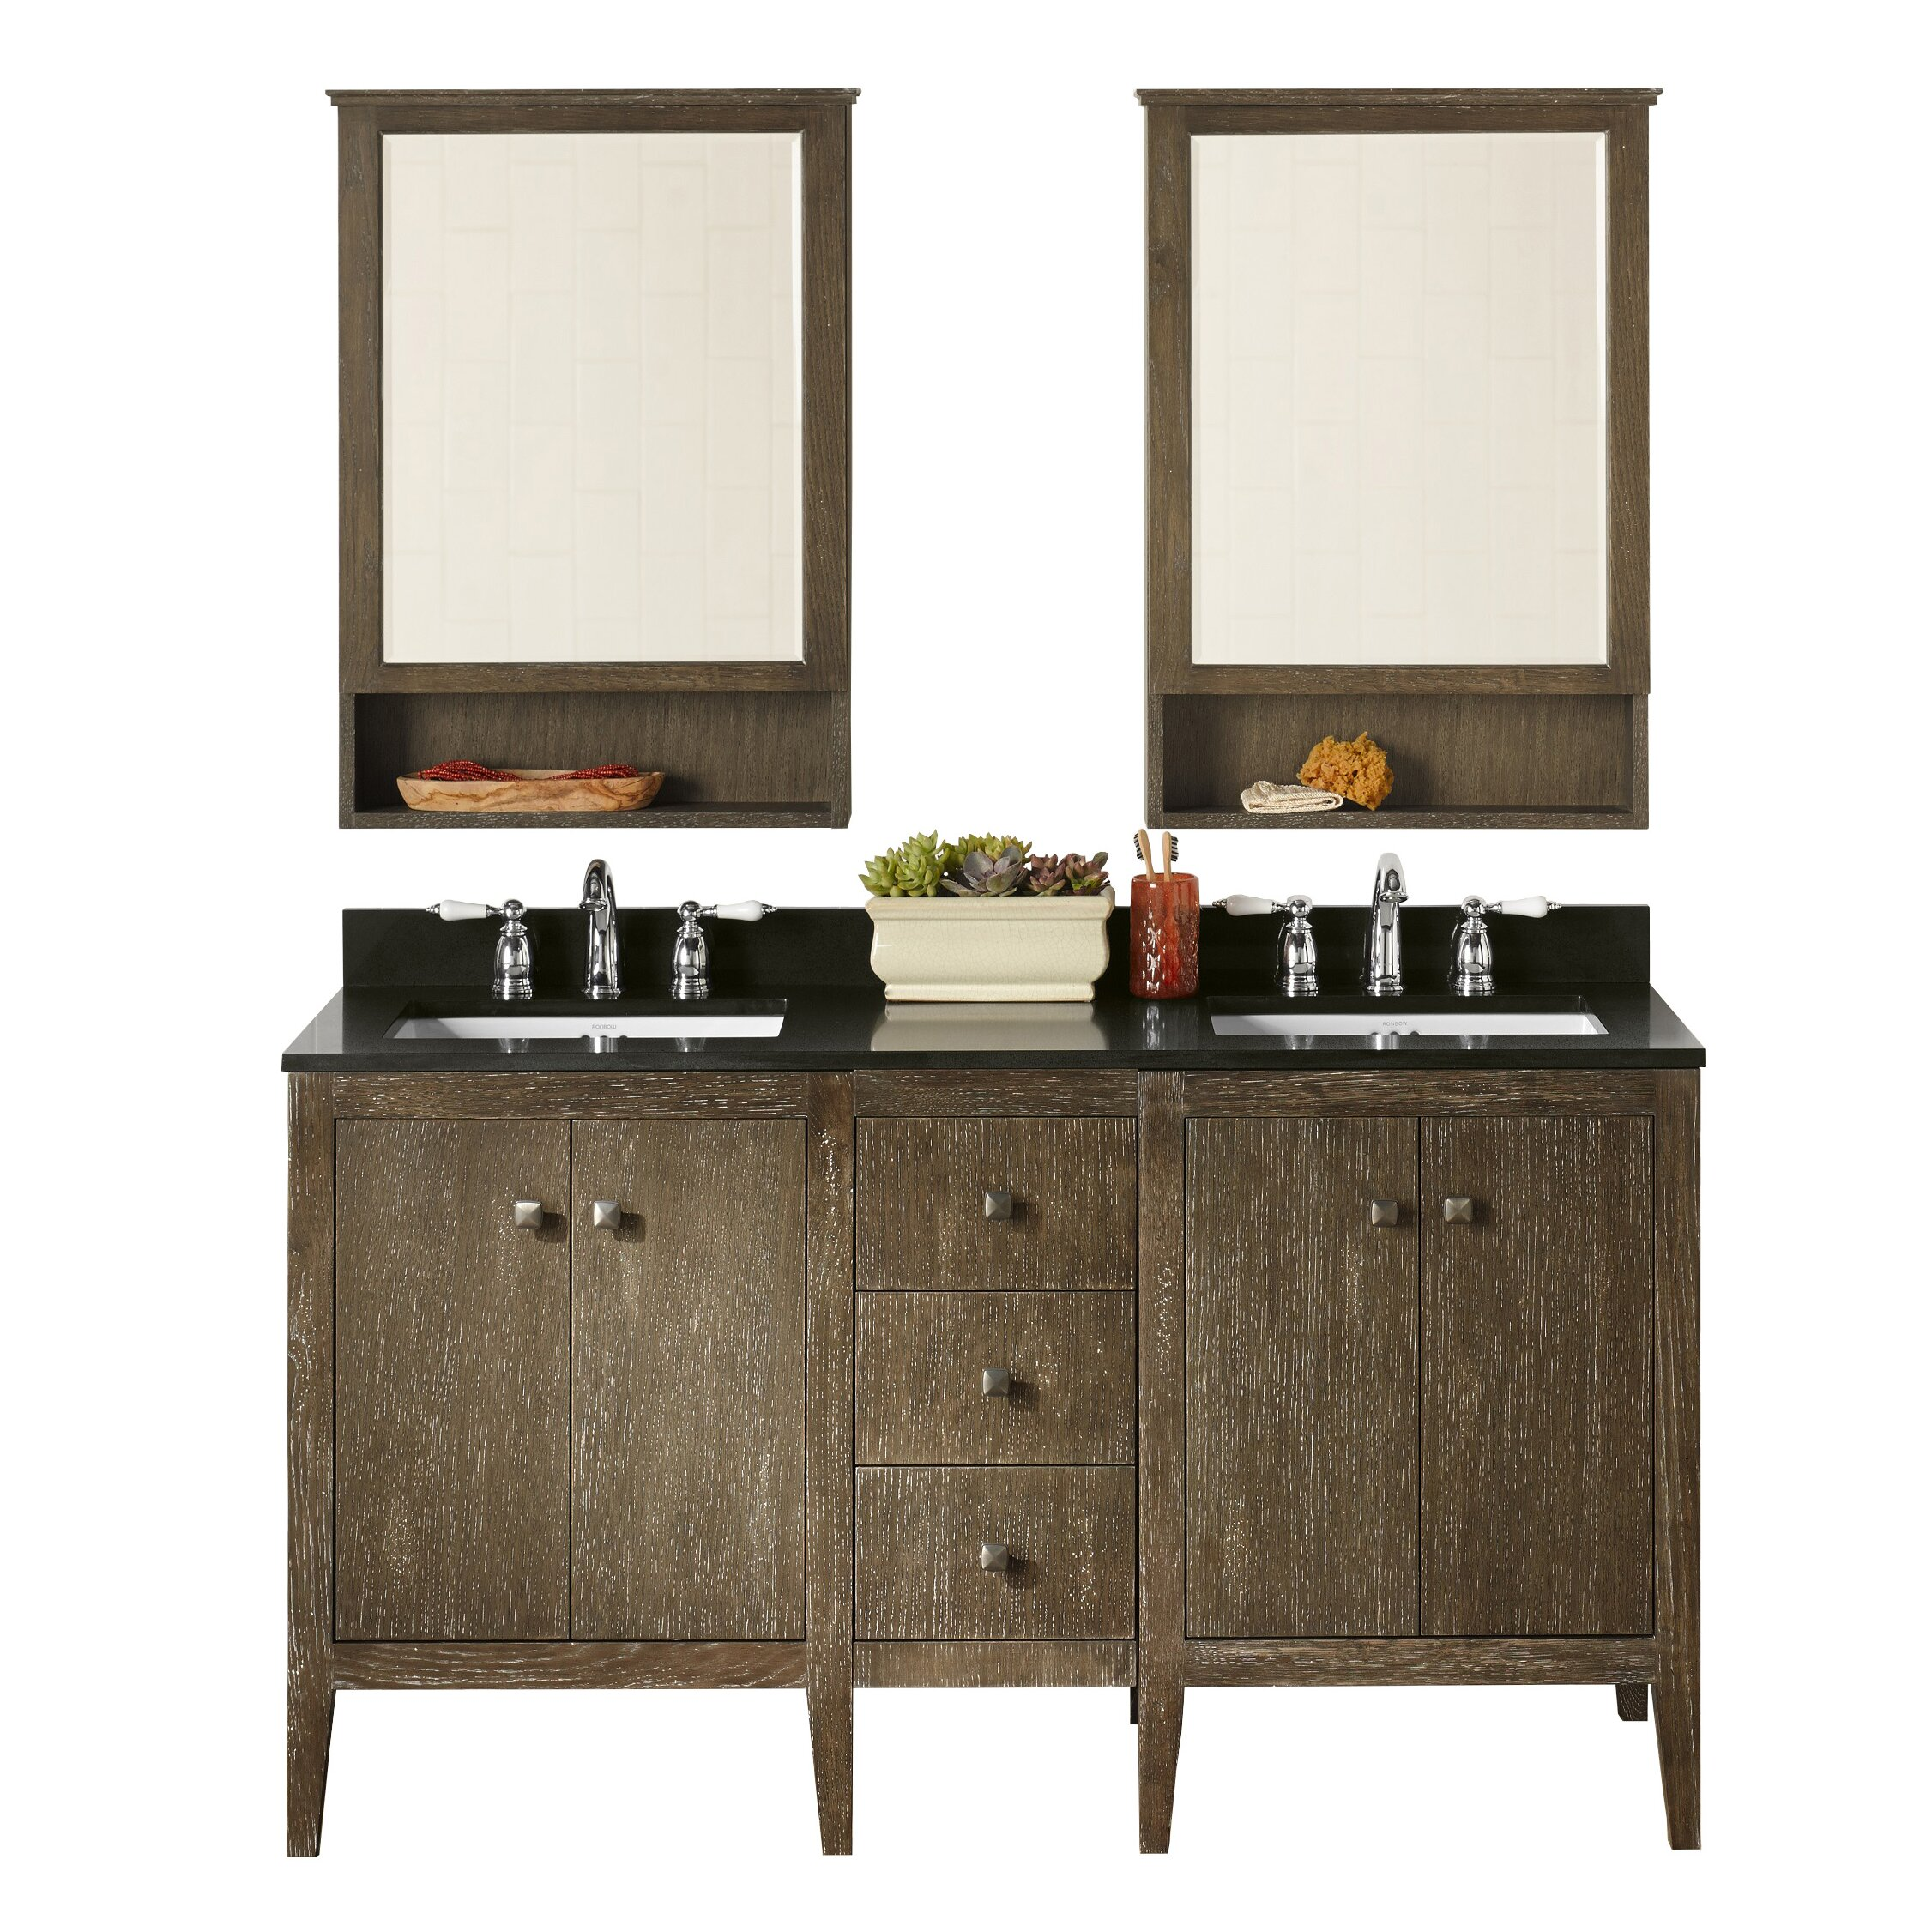 "Ronbow Sophie 24"" Double Bathroom Vanity Set with Mirror"